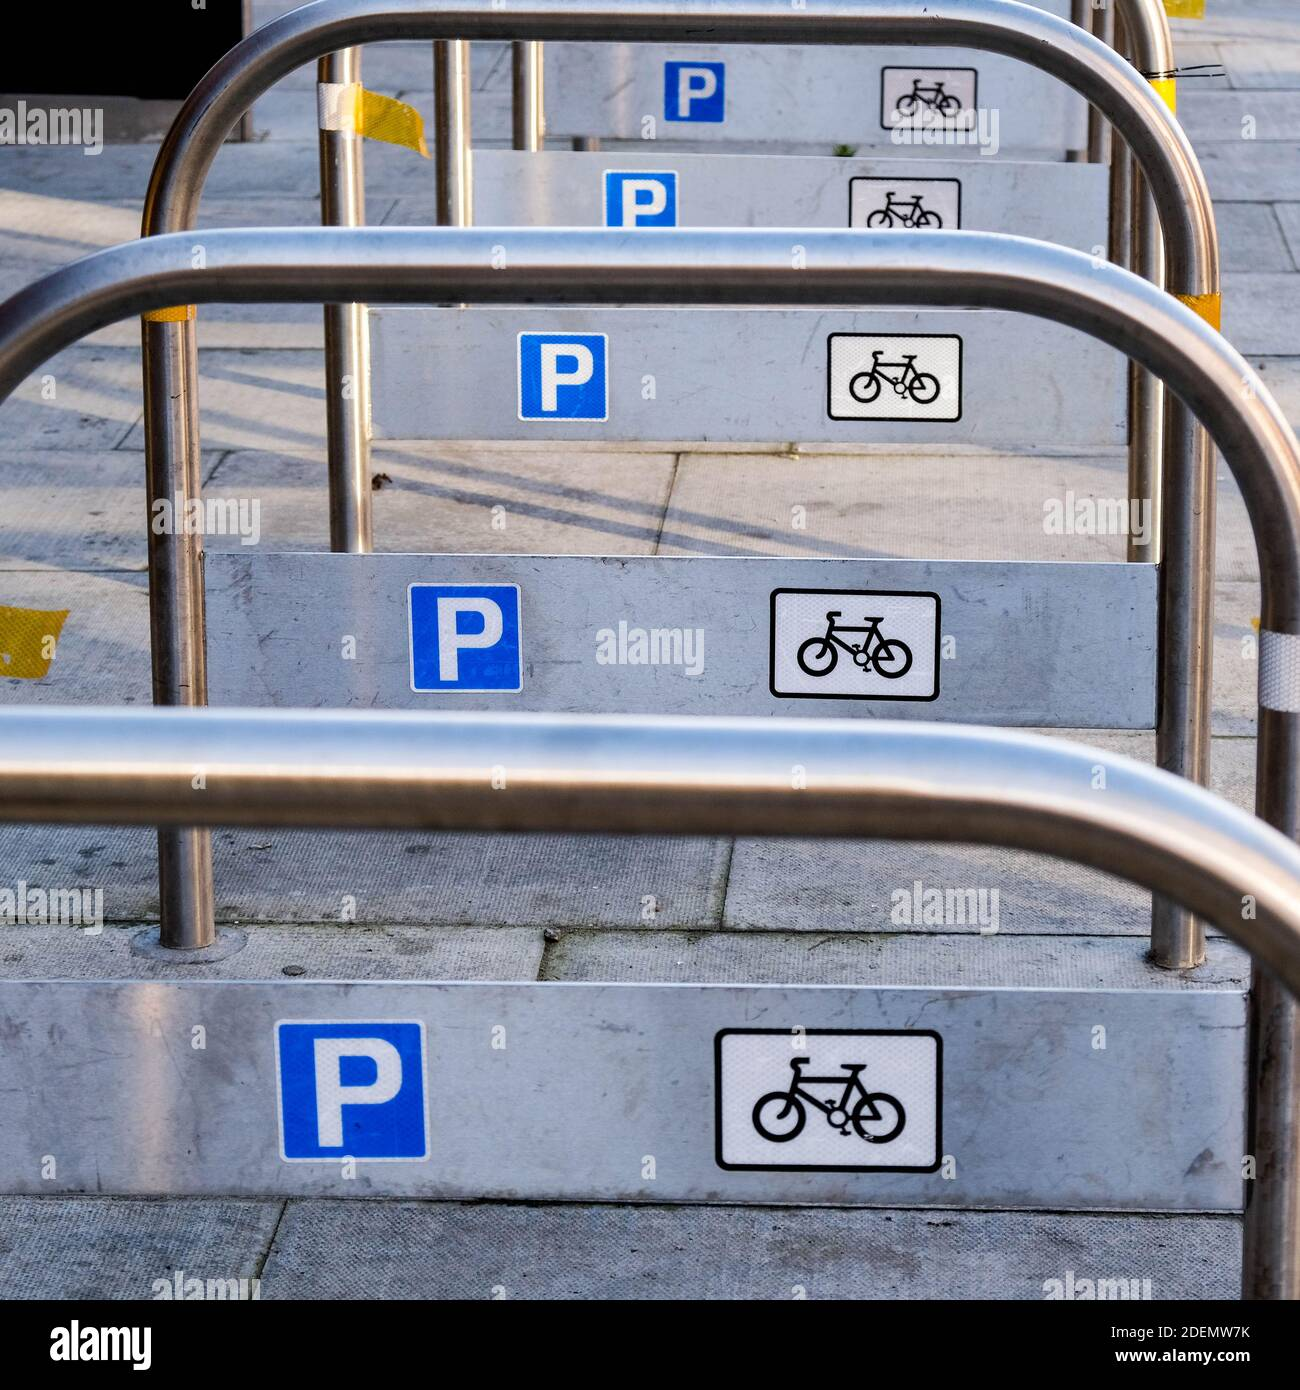 London UK, December 01 2020, Parking Racks for Bicycle Parking Empty During COVID-19 Lockdown Stock Photo